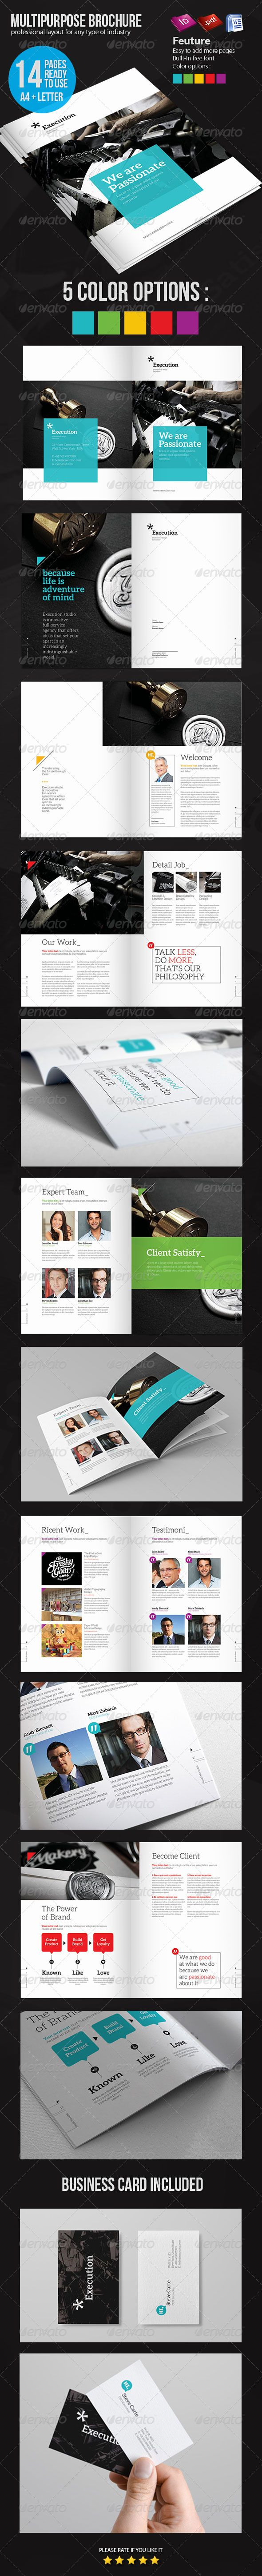 Business Brochure Template #graphicriver This is a professional and clean Business Brochure template that can be used for any type of Corporate and fully editable and customizable. 14 pages  Easy to Customize Built-in free fonts A4 and letter size Paragraph Style 300 dpi – CMYK color print-ready with bleed #a4 #blue #brochure #business #businessbrochure #clean #corporate #green #letter #modern #print ready #professional #purple #red #yellow